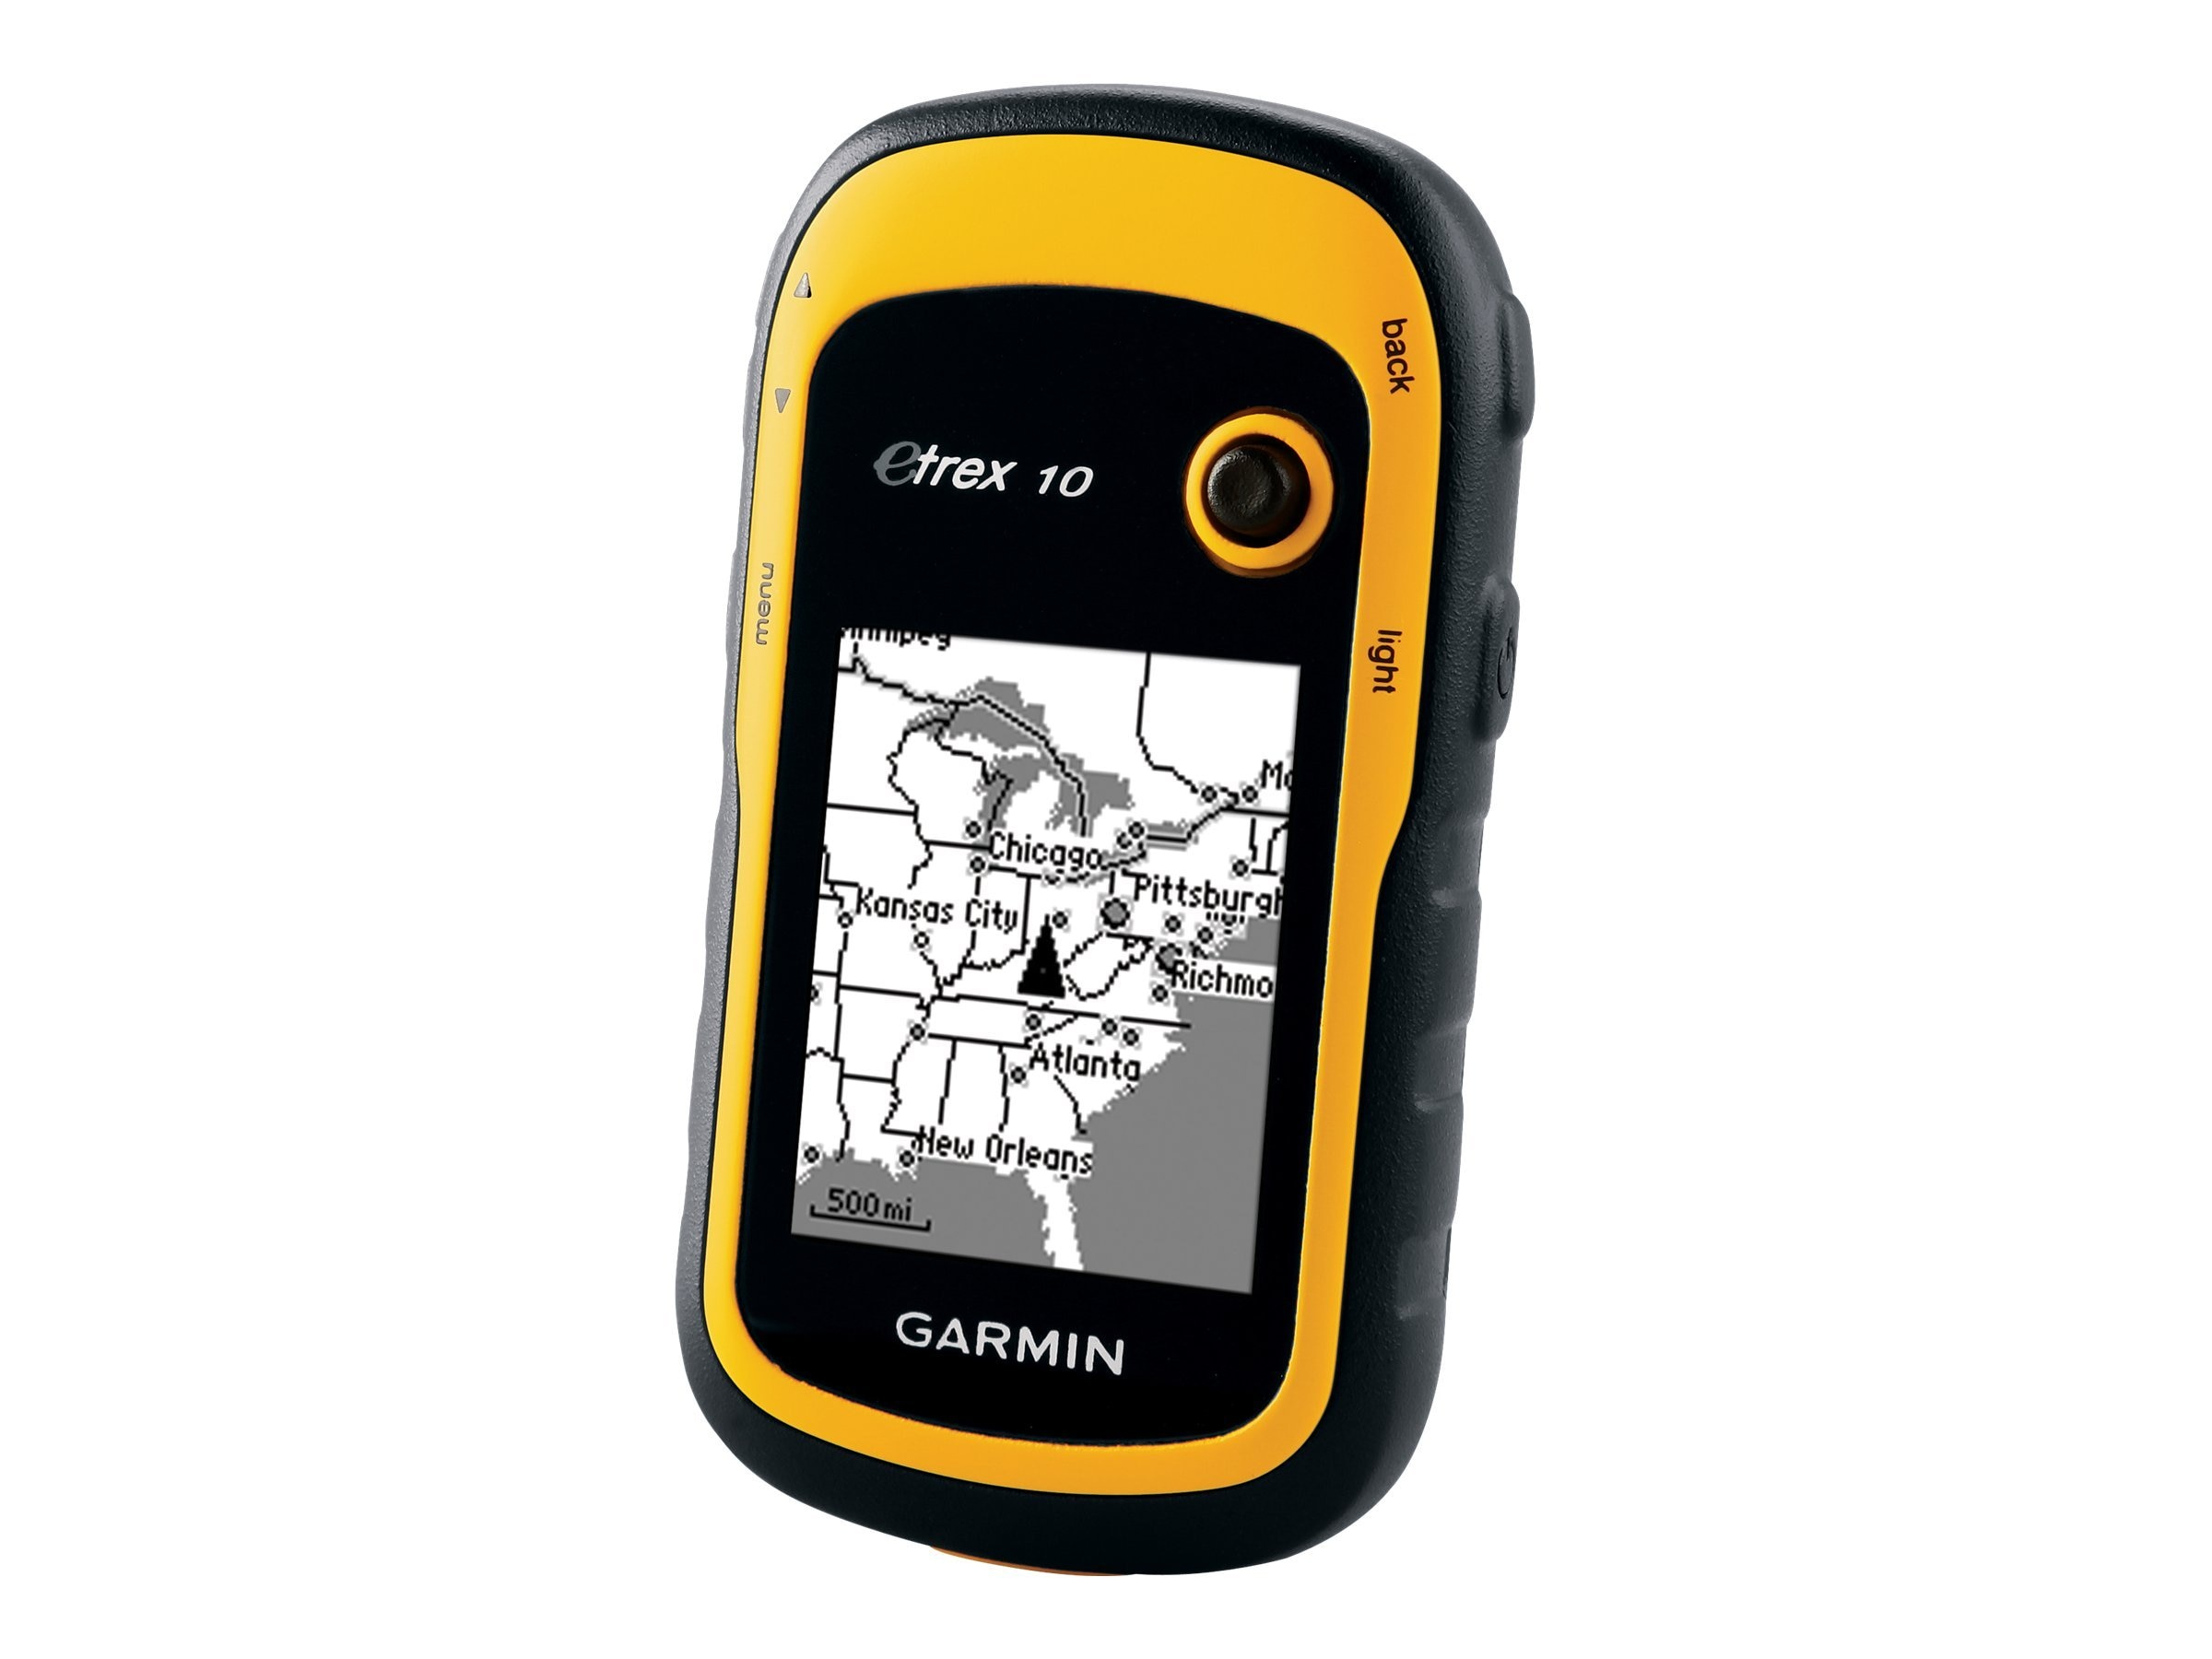 Garmin eTrex 10 GPS Handheld, Yellow, 010-00970-00, 13344929, Global Positioning Systems